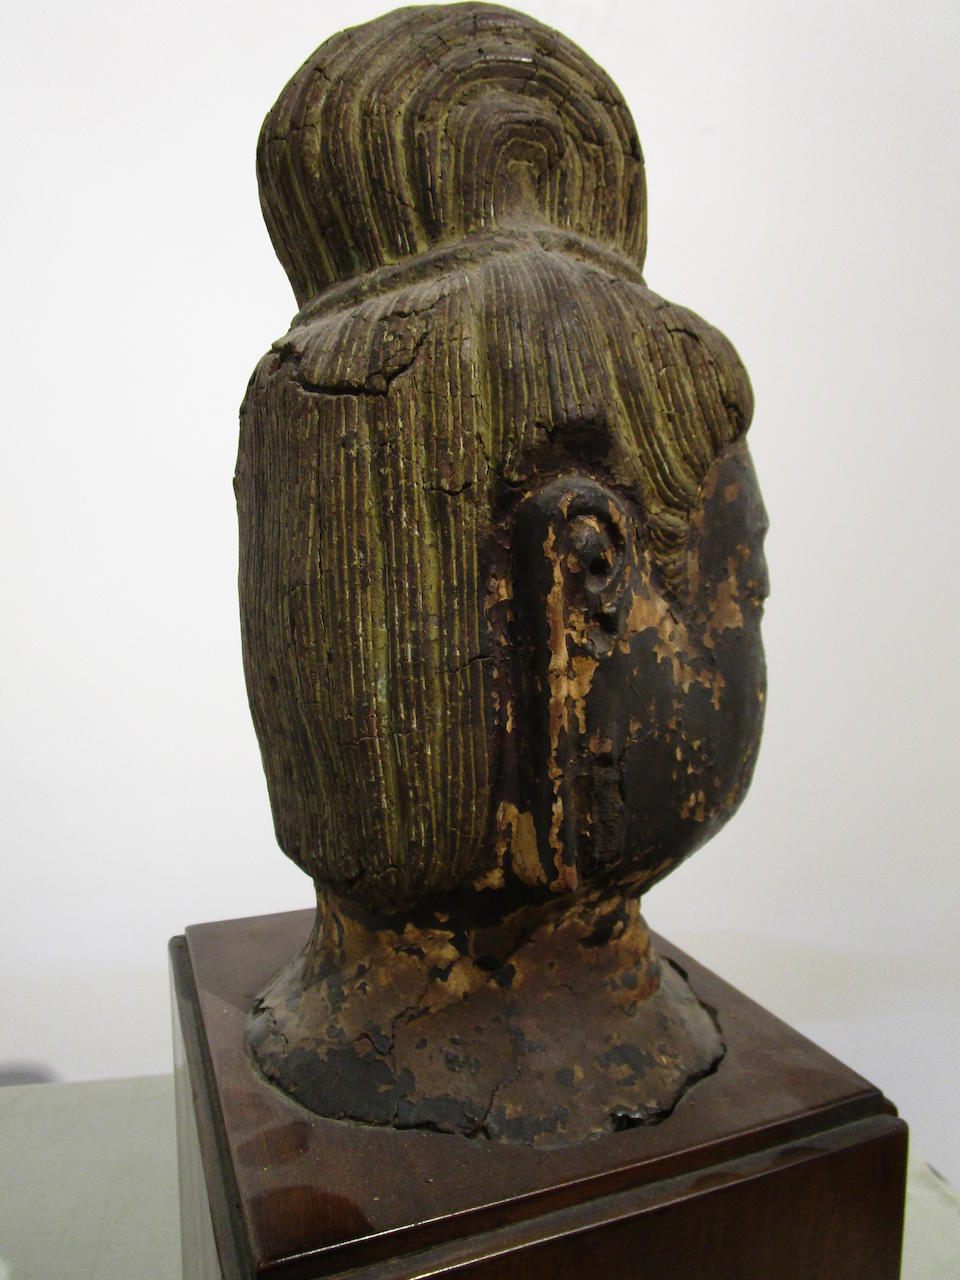 A dry-lacquer head of the buddha Nara period (710-794)